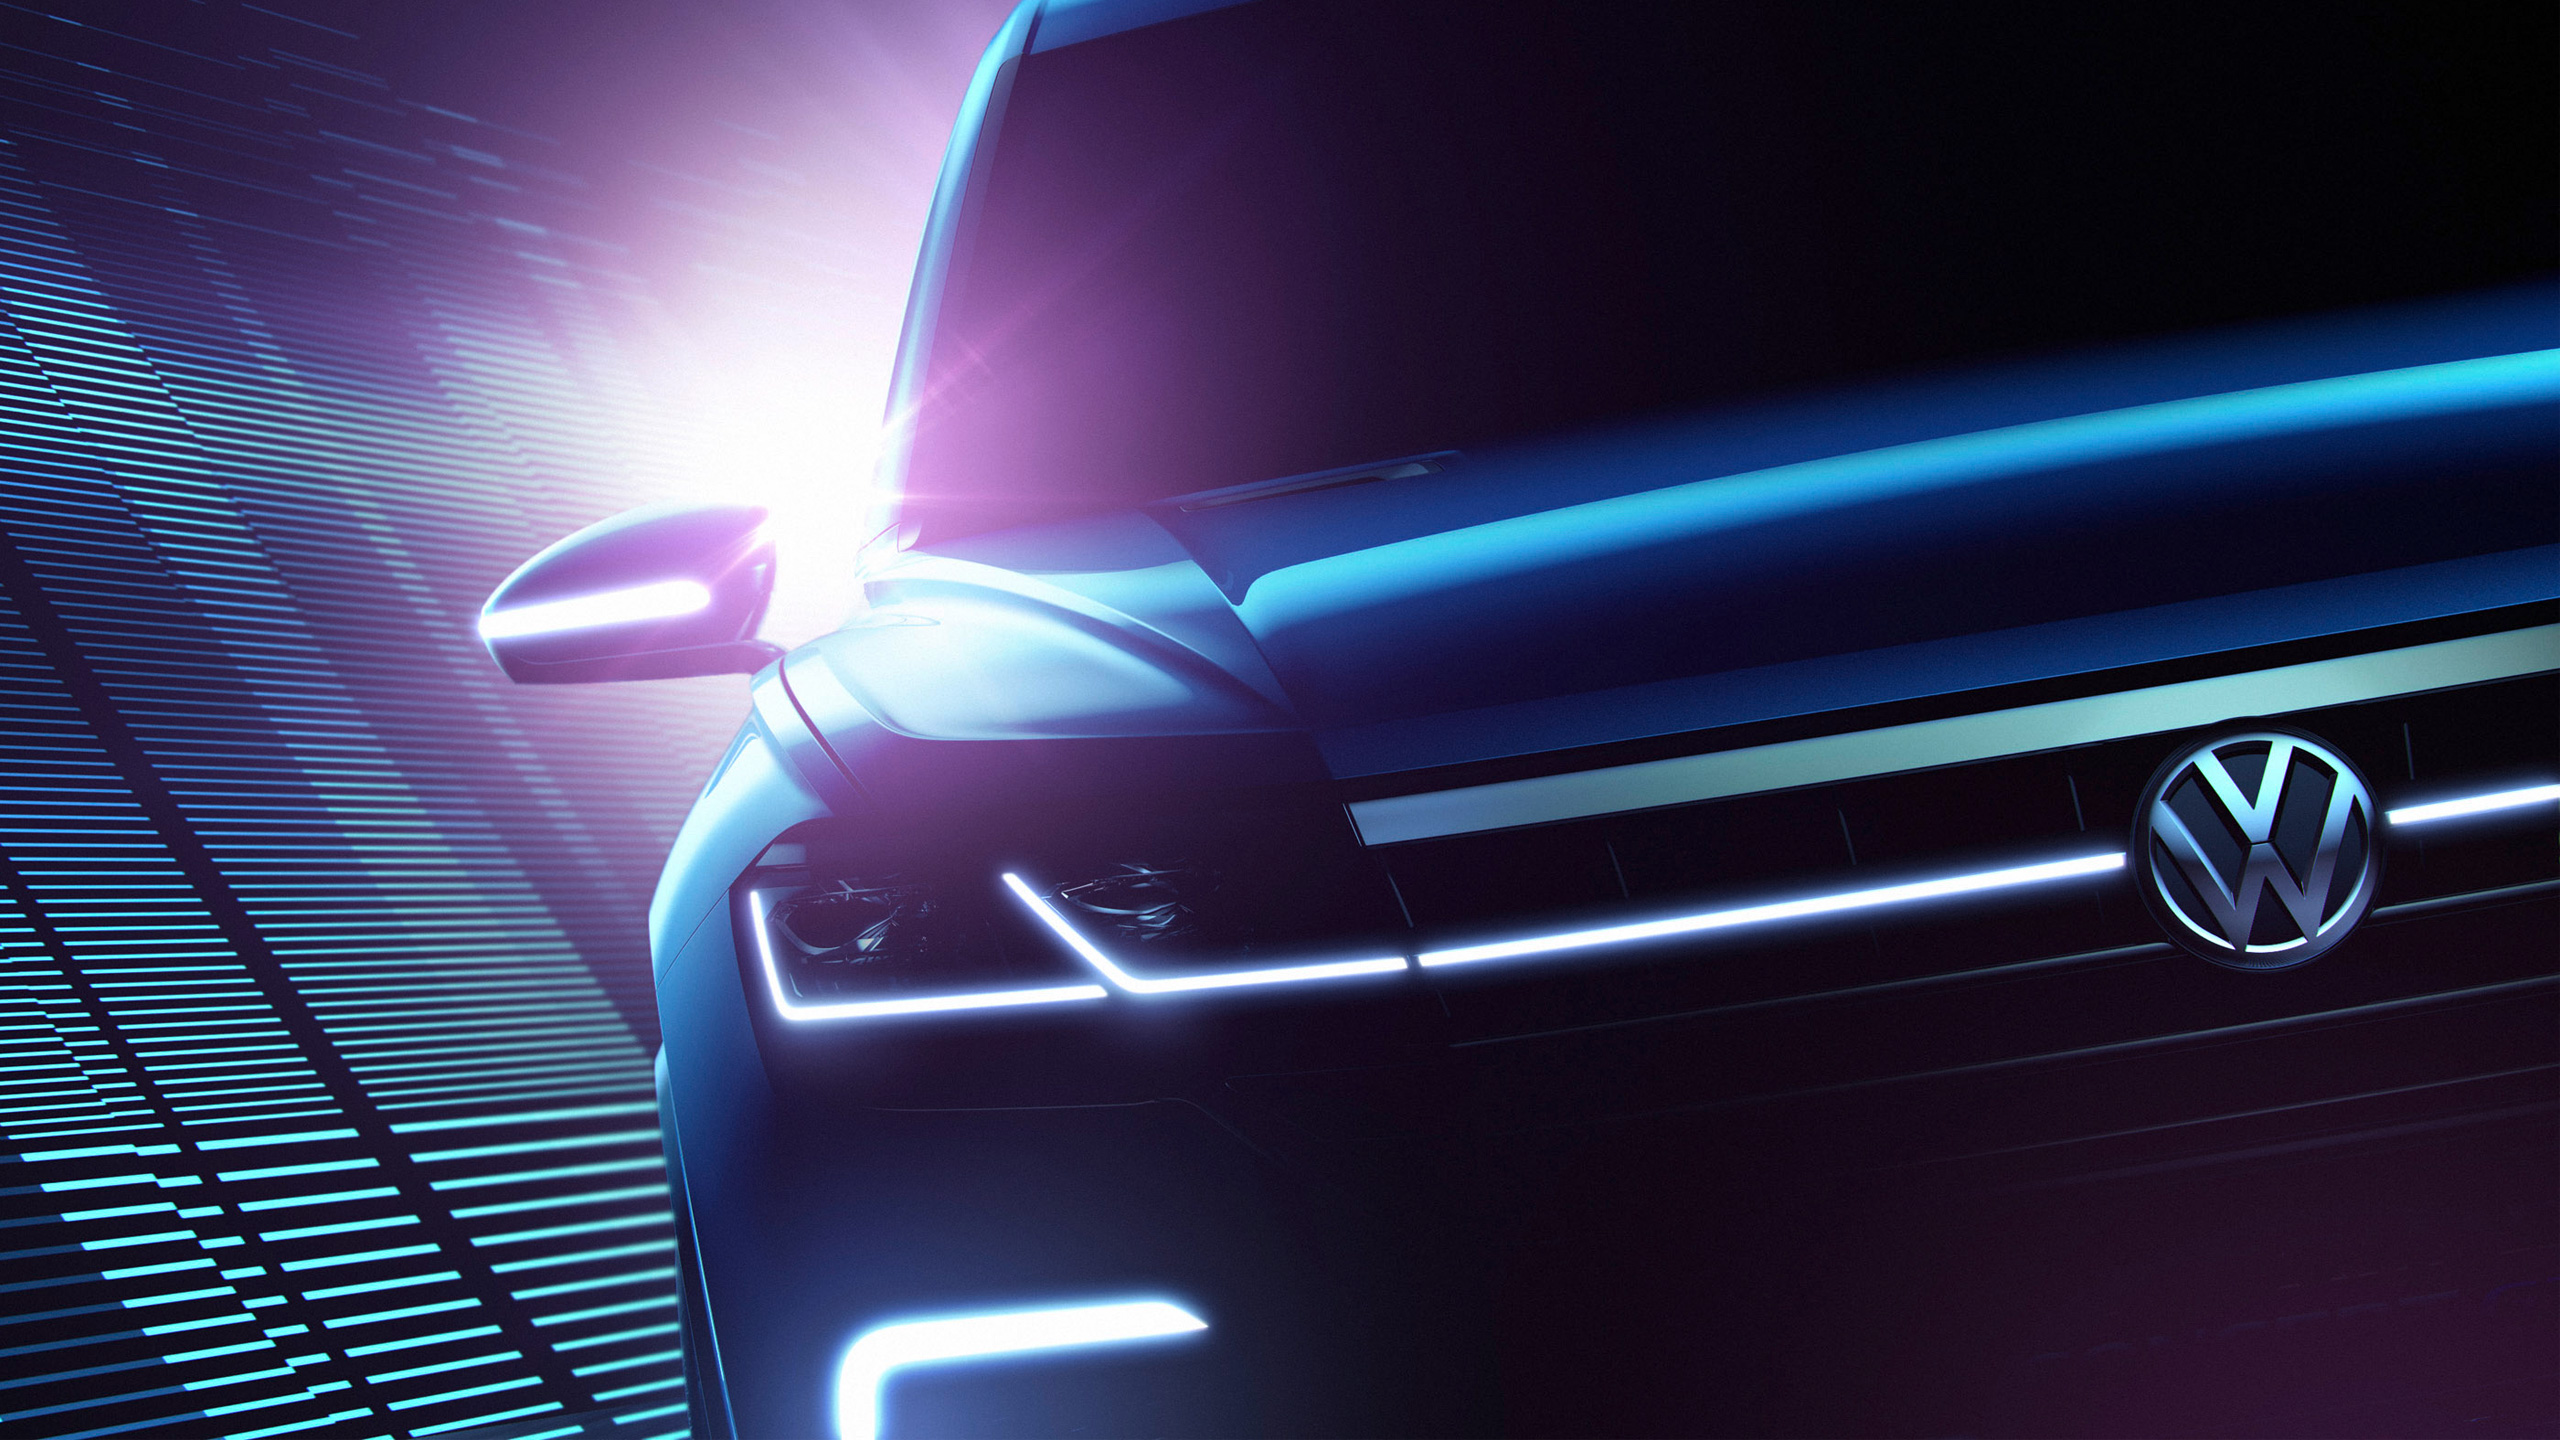 Strategy Management Of Ford Motor  pany besides Solarroof moreover Yangfeng Automotive Interiors Xim17 besides Tesla Gigafactory Context additionally International  petition. on tesla strategy